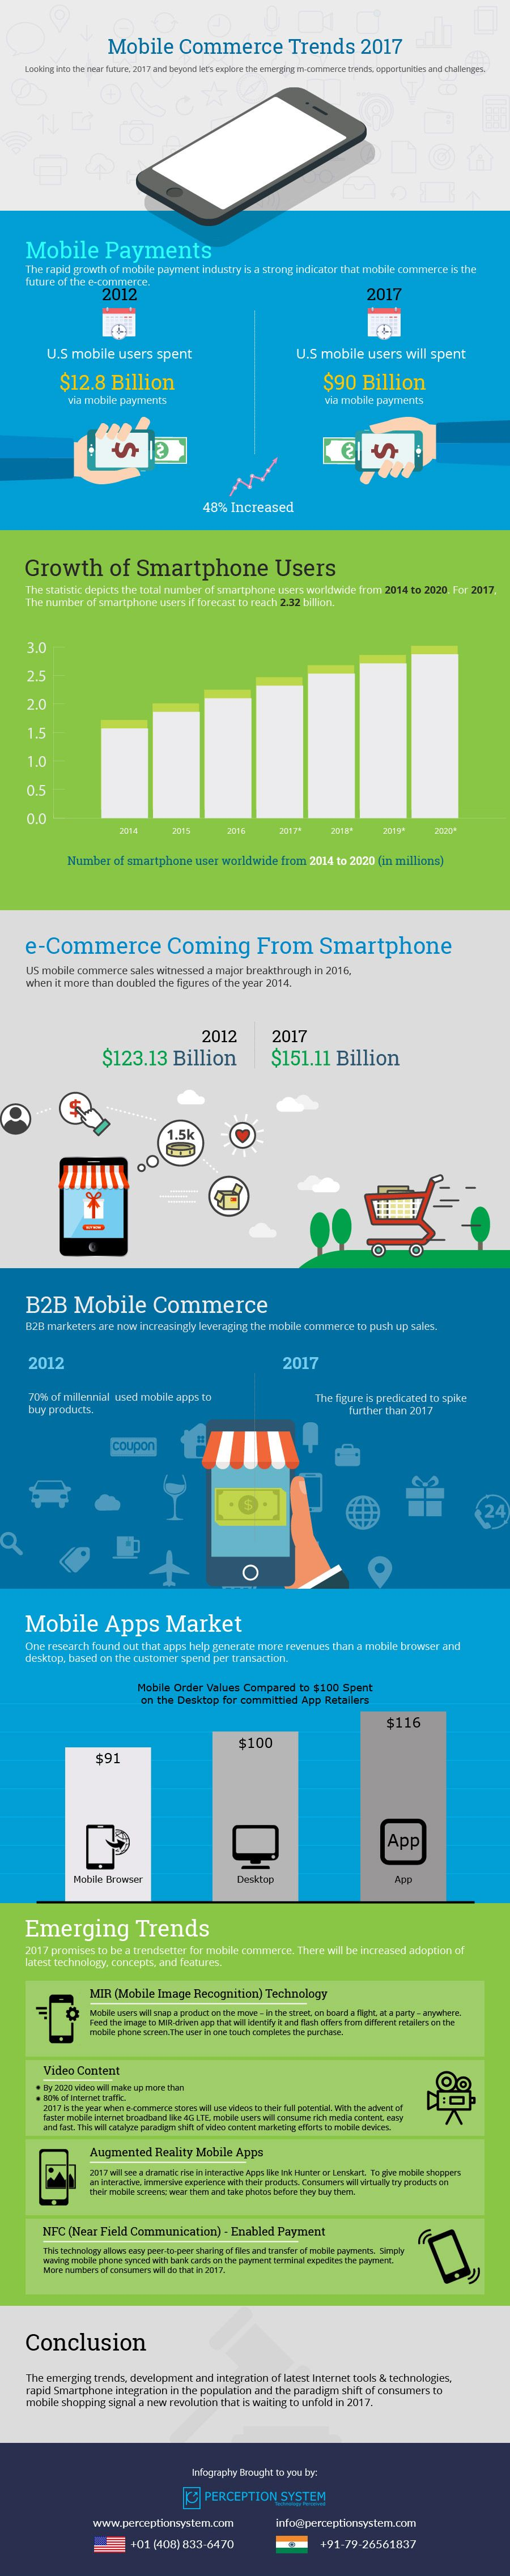 Top Mobile Commerce Trends of 2017 #Infographic